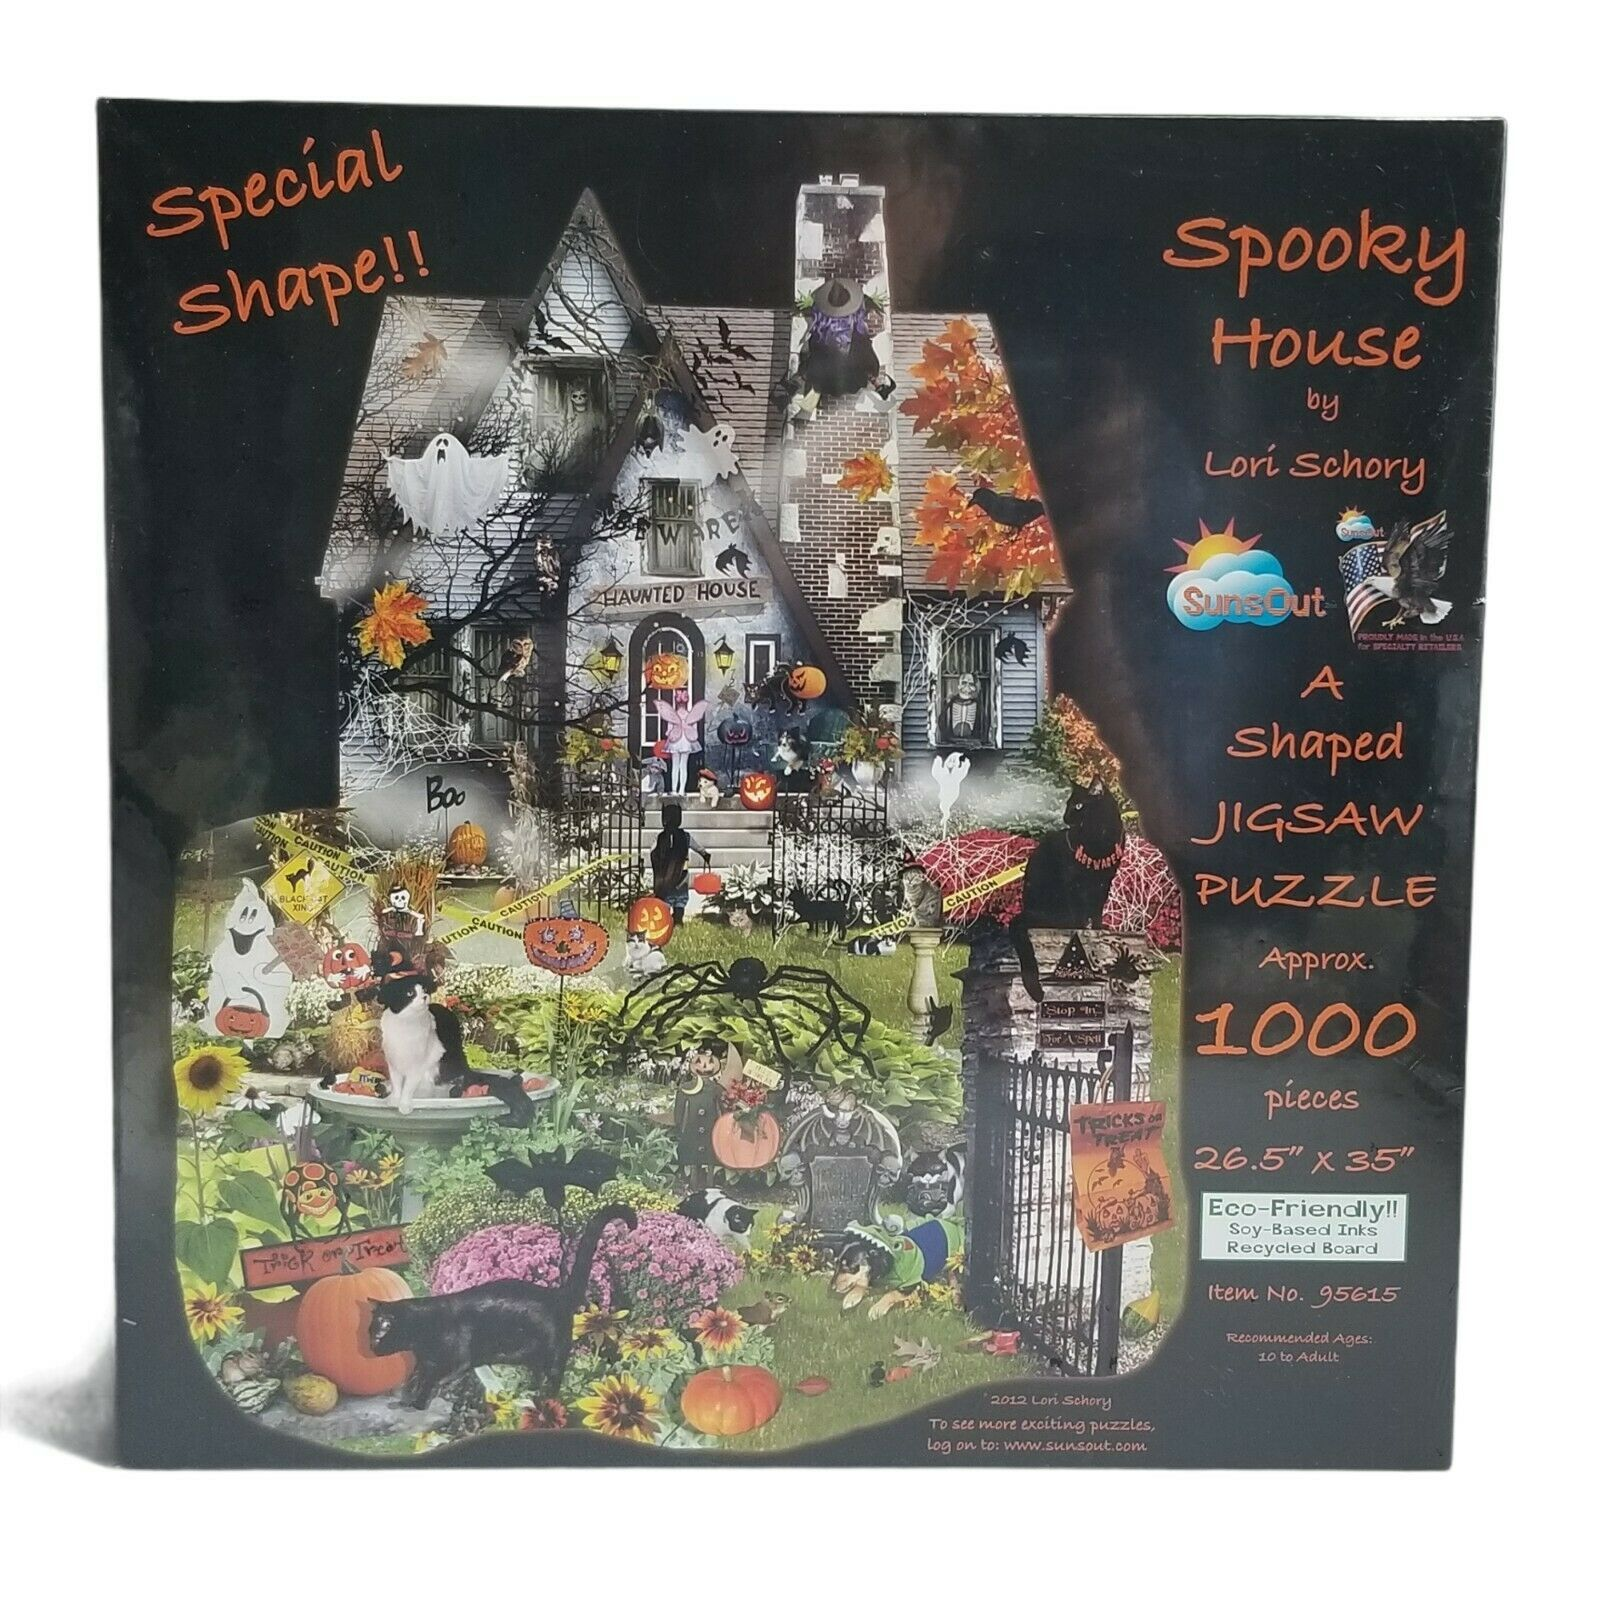 NEW Sealed Spooky House Puzzle SunsOut Lori Schory Halloween Shaped 1000 Pc - $28.80